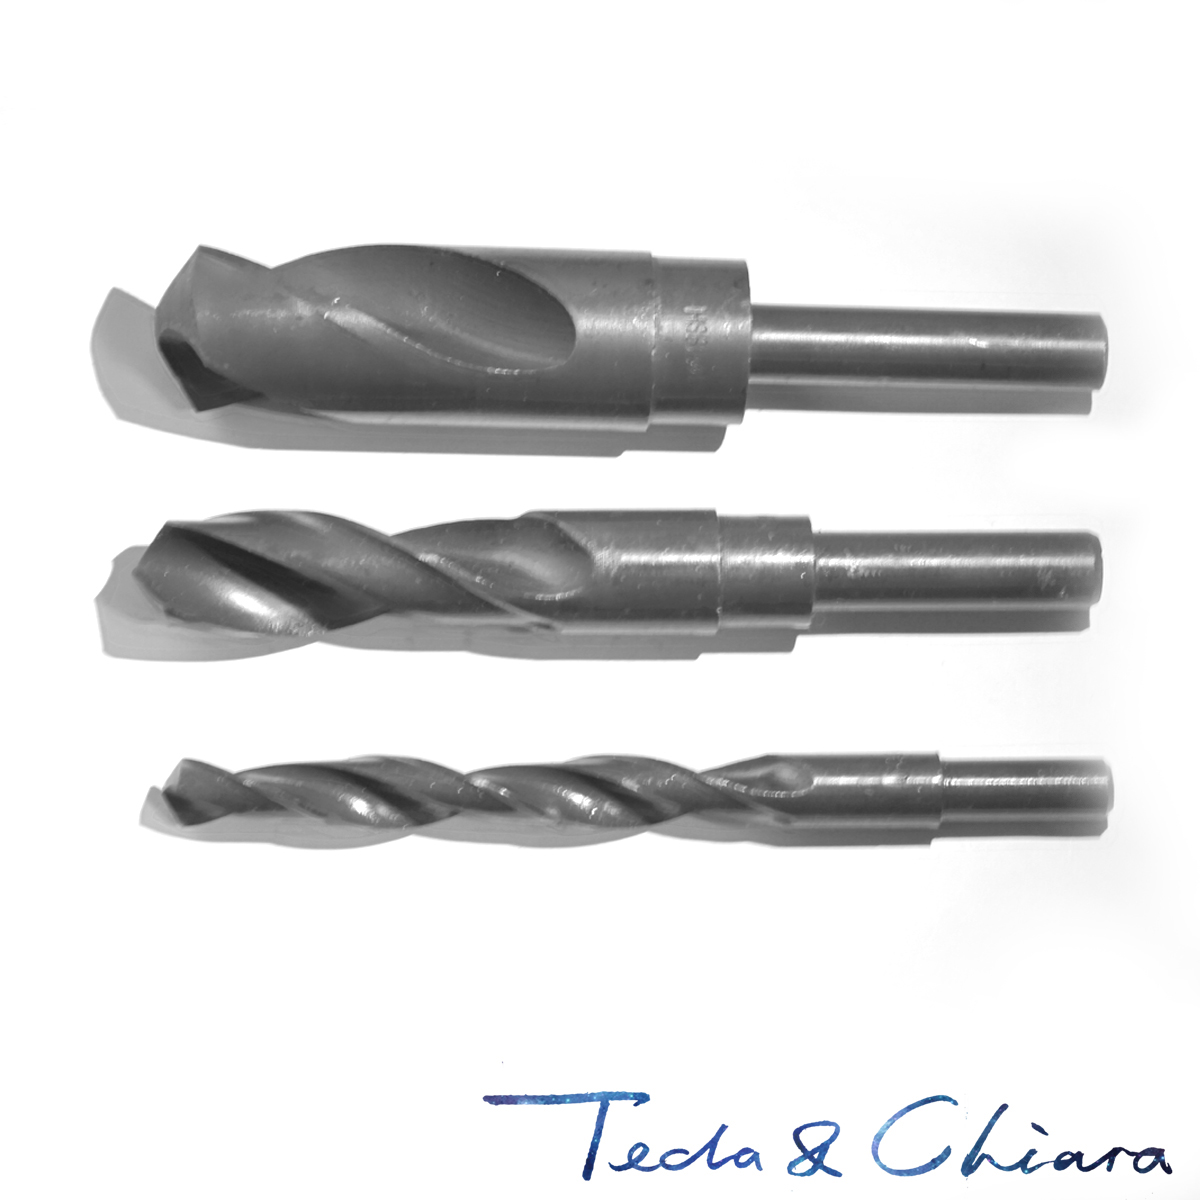 16.6mm 16.7mm 16.8mm 16.9mm 17mm HSS Reduced Straight Crank Twist Drill Bit Shank Dia 12.7mm 1/2 Inch 16.6 16.7 16.8 16.9 17